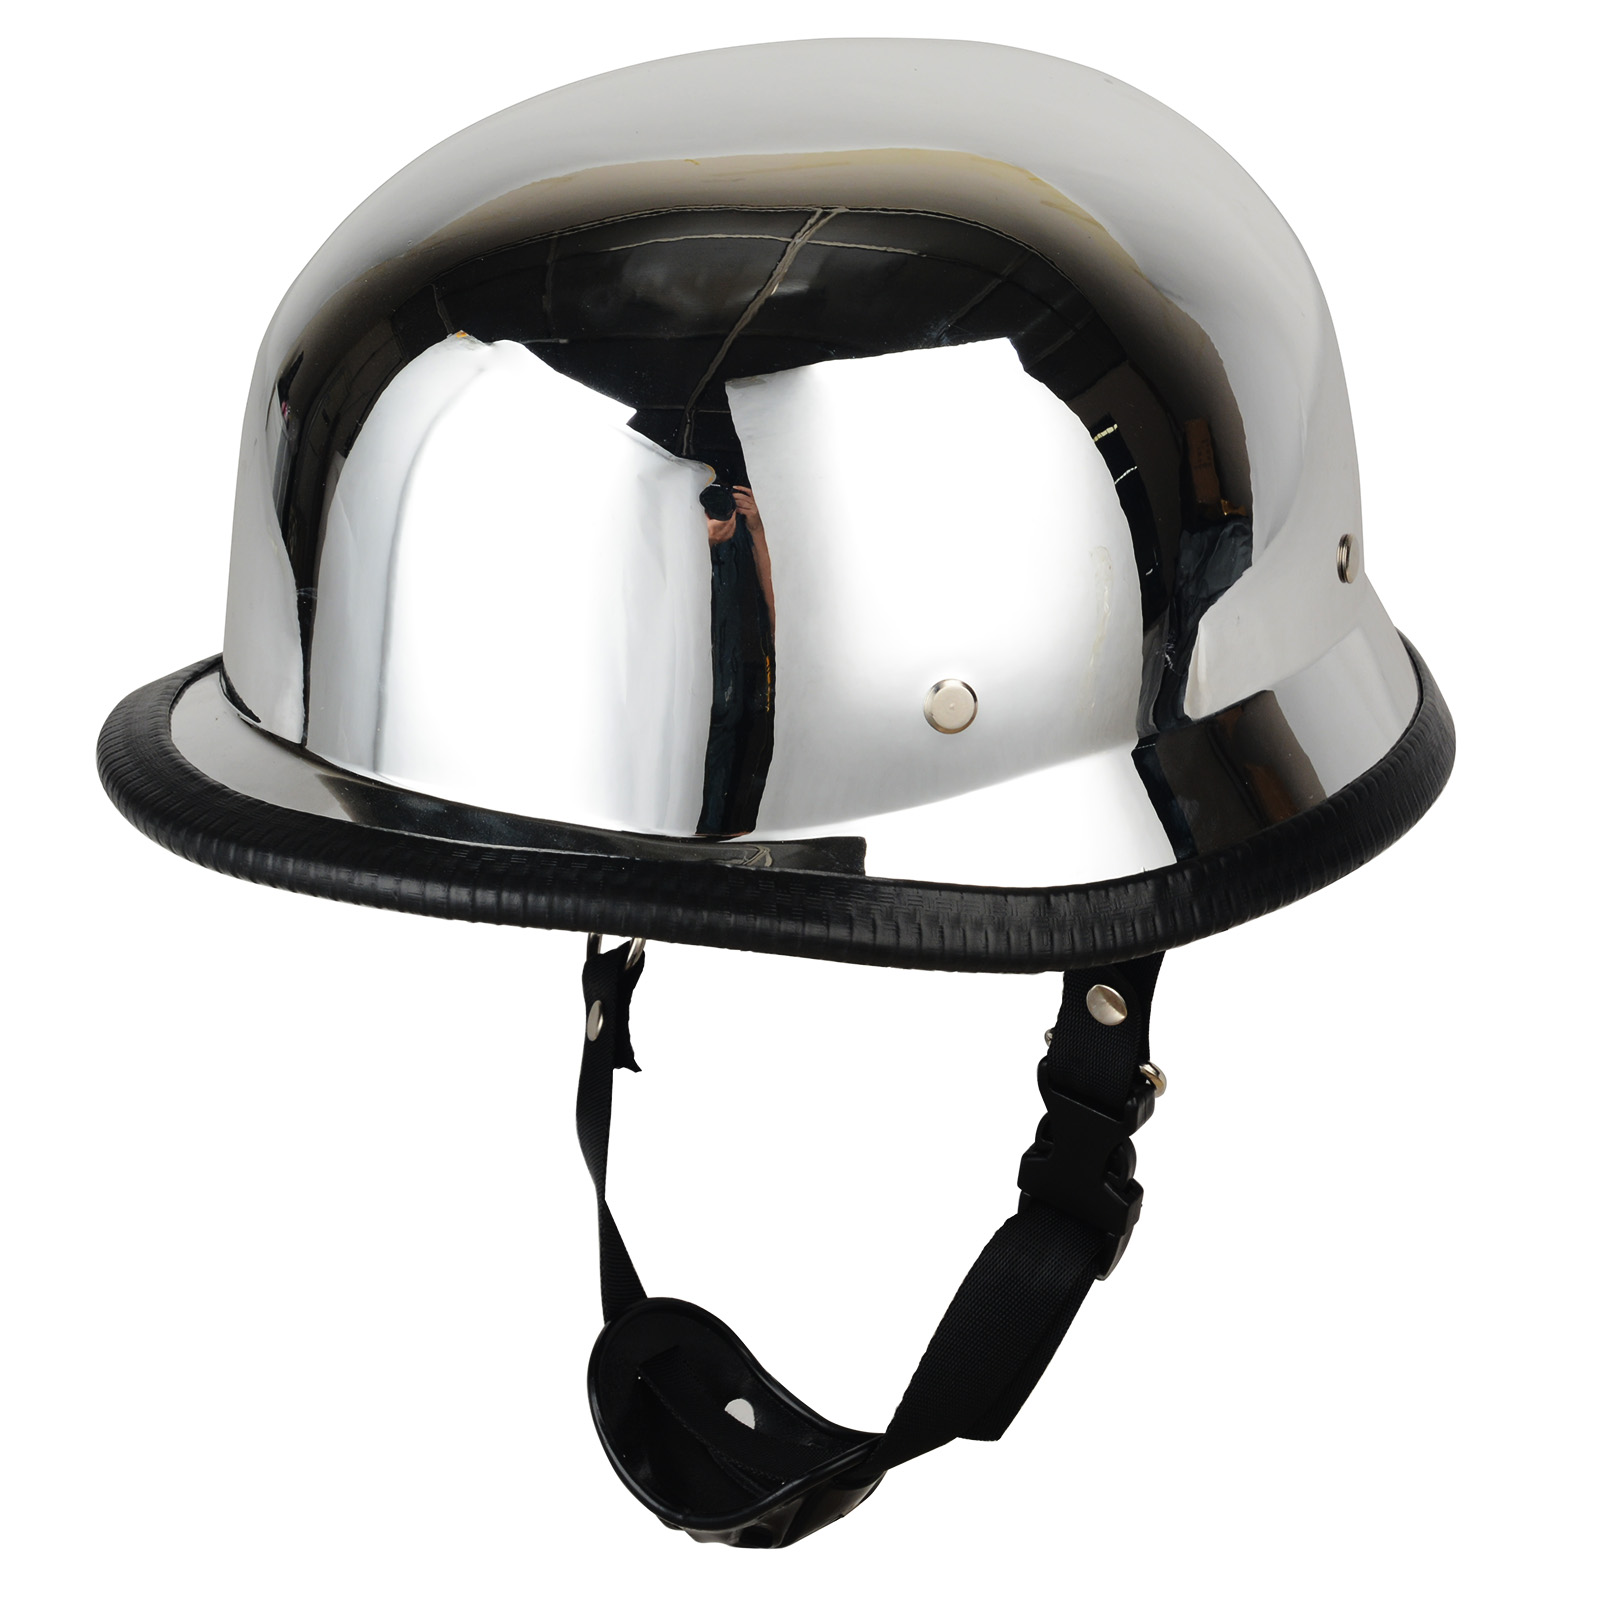 421554c8 Helmets Cheap Helmets For Harley 1pc M L XL 3 Size Motorcycle.We offer the  best wholesale price, quality guarantee, professional e-business service  and fast ...